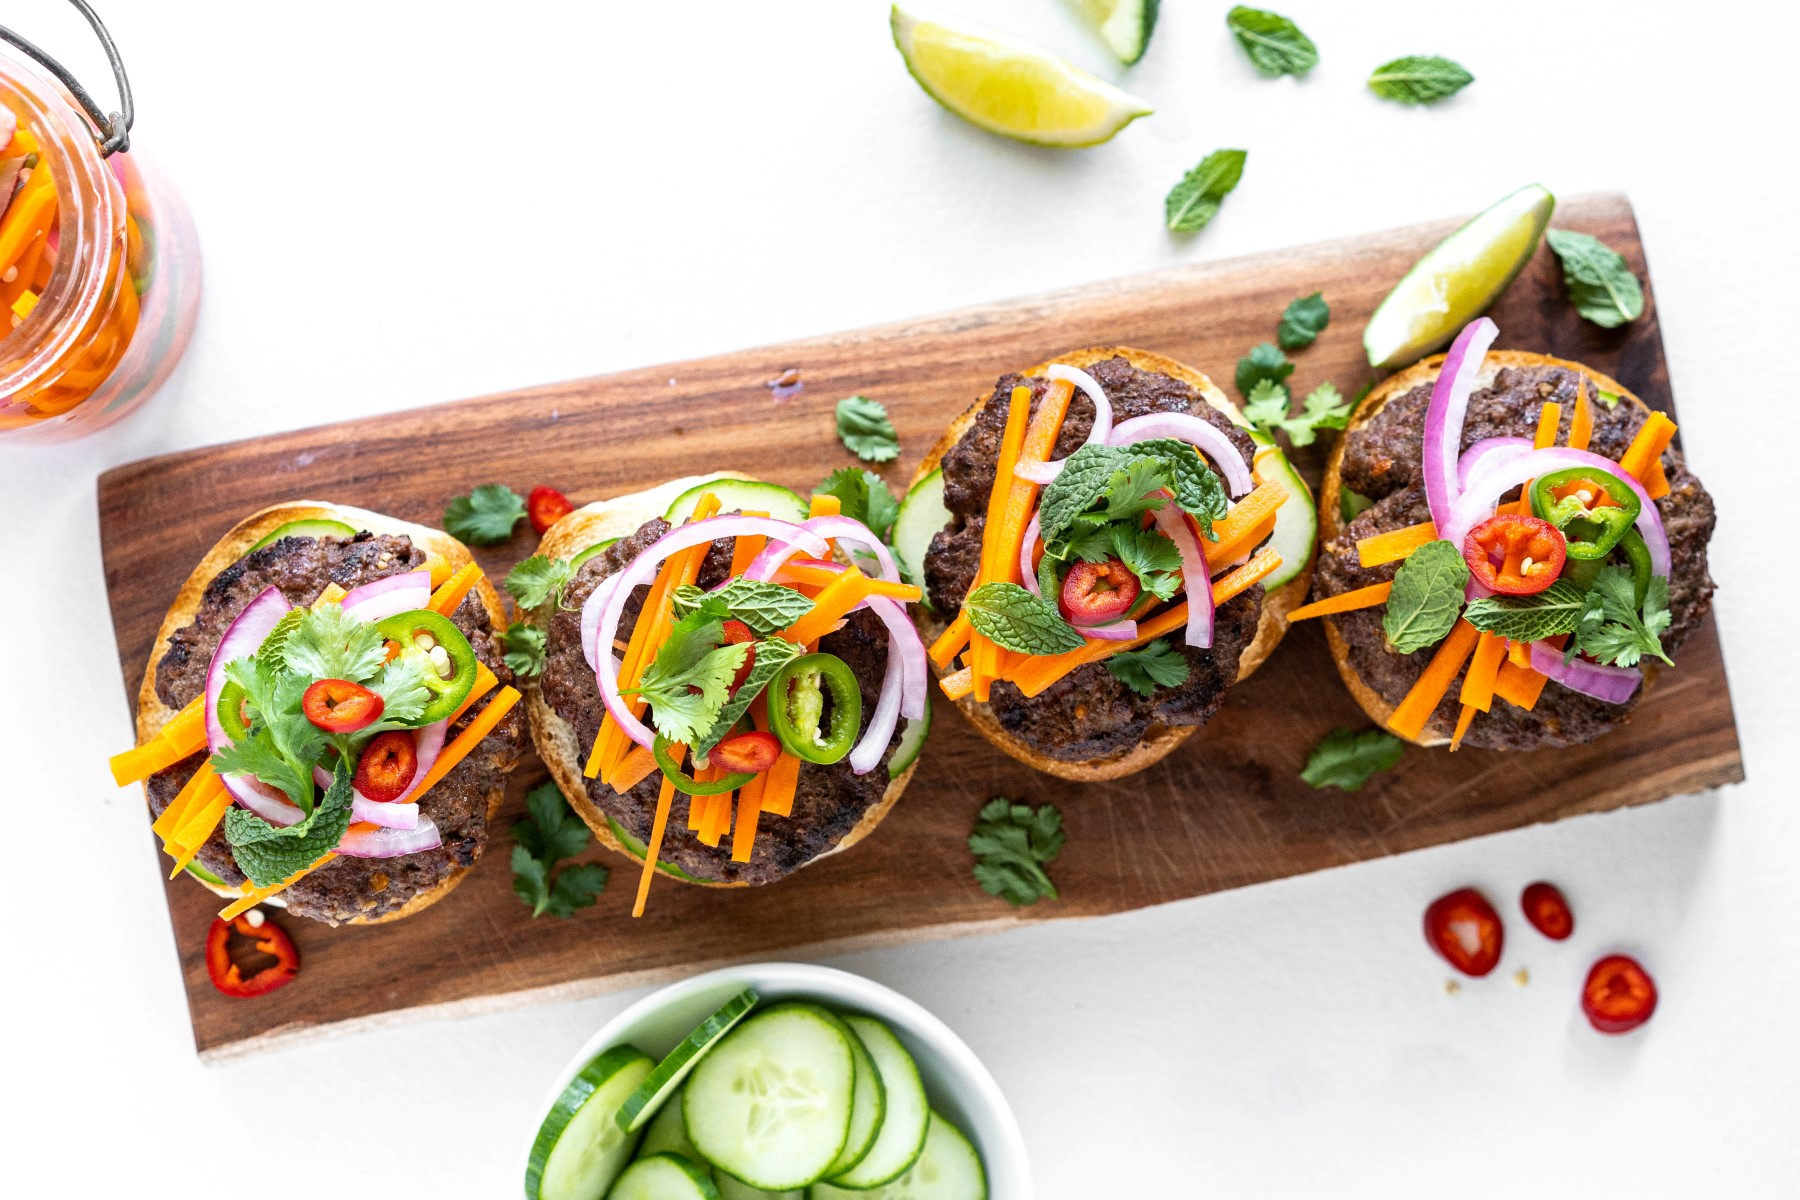 4 Banh Mi Burgers on a wooden board topped with quick pickled veggies, sliced cucumber, mint leaves and cilantro.